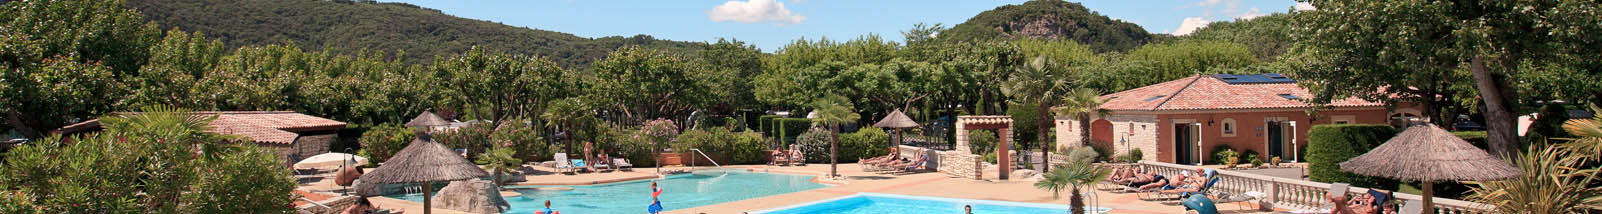 Camping L'Ardchois